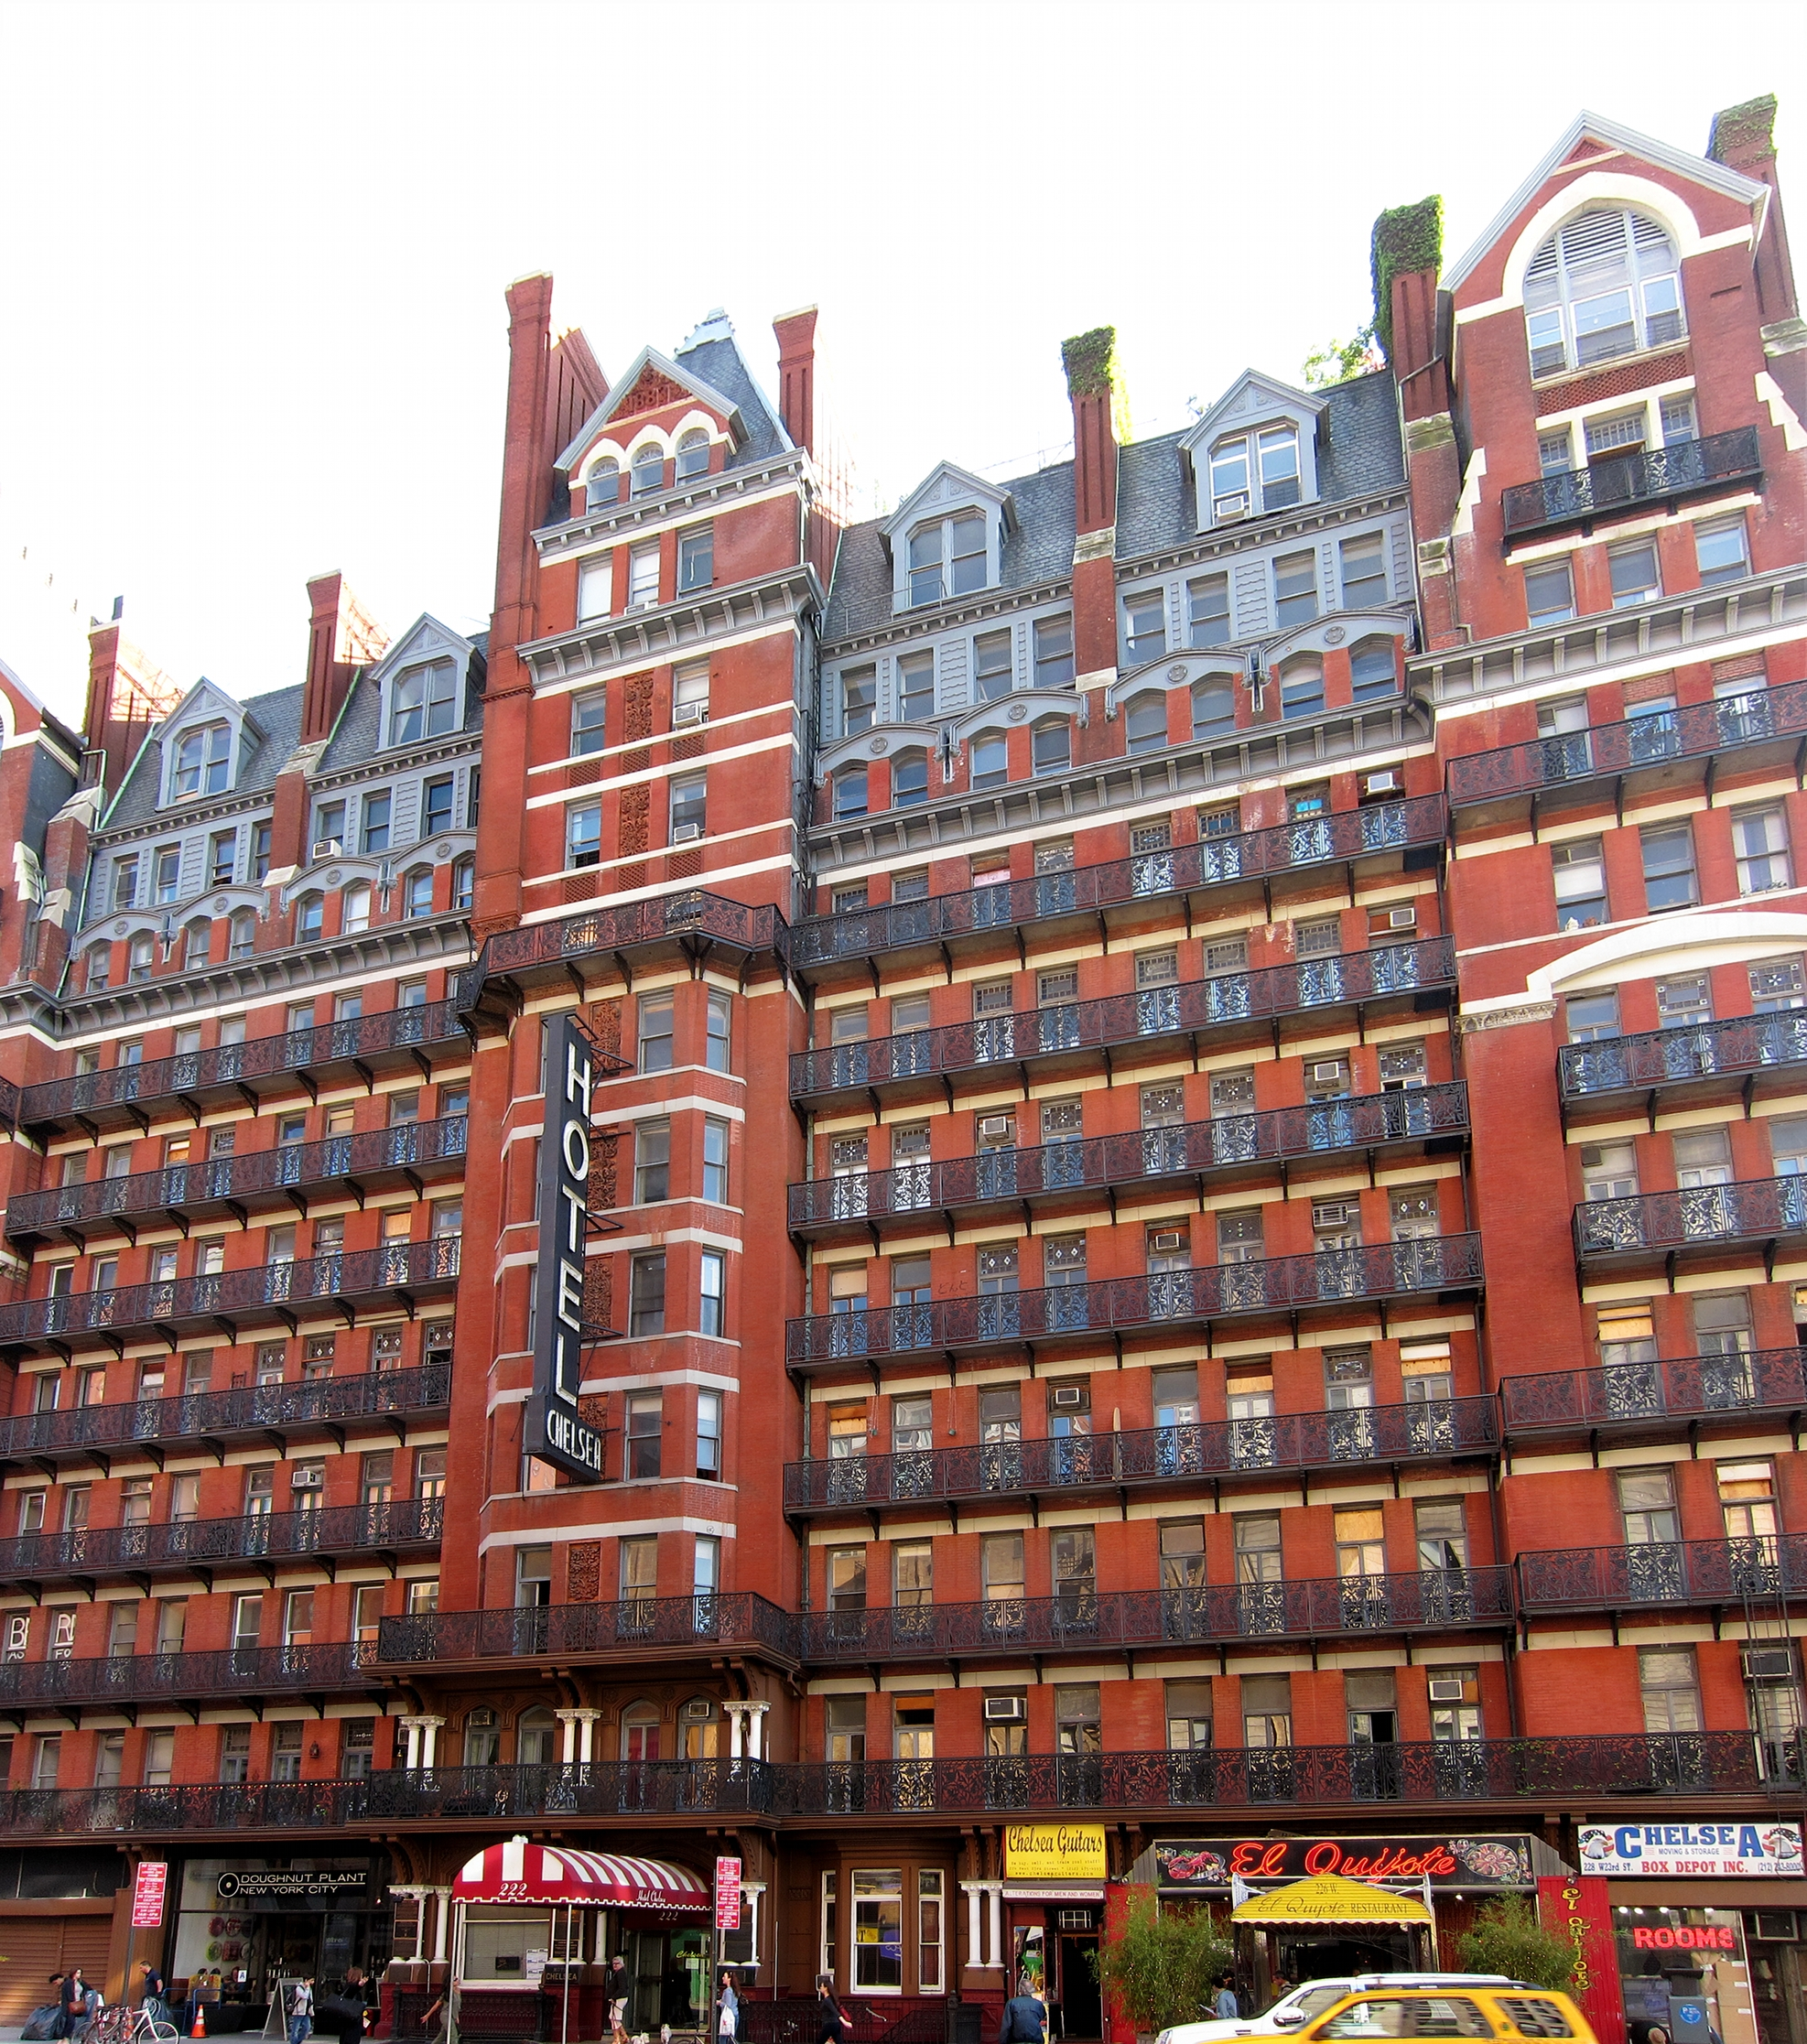 http://upload.wikimedia.org/wikipedia/commons/7/72/NY_chelsea_hotel.jpg